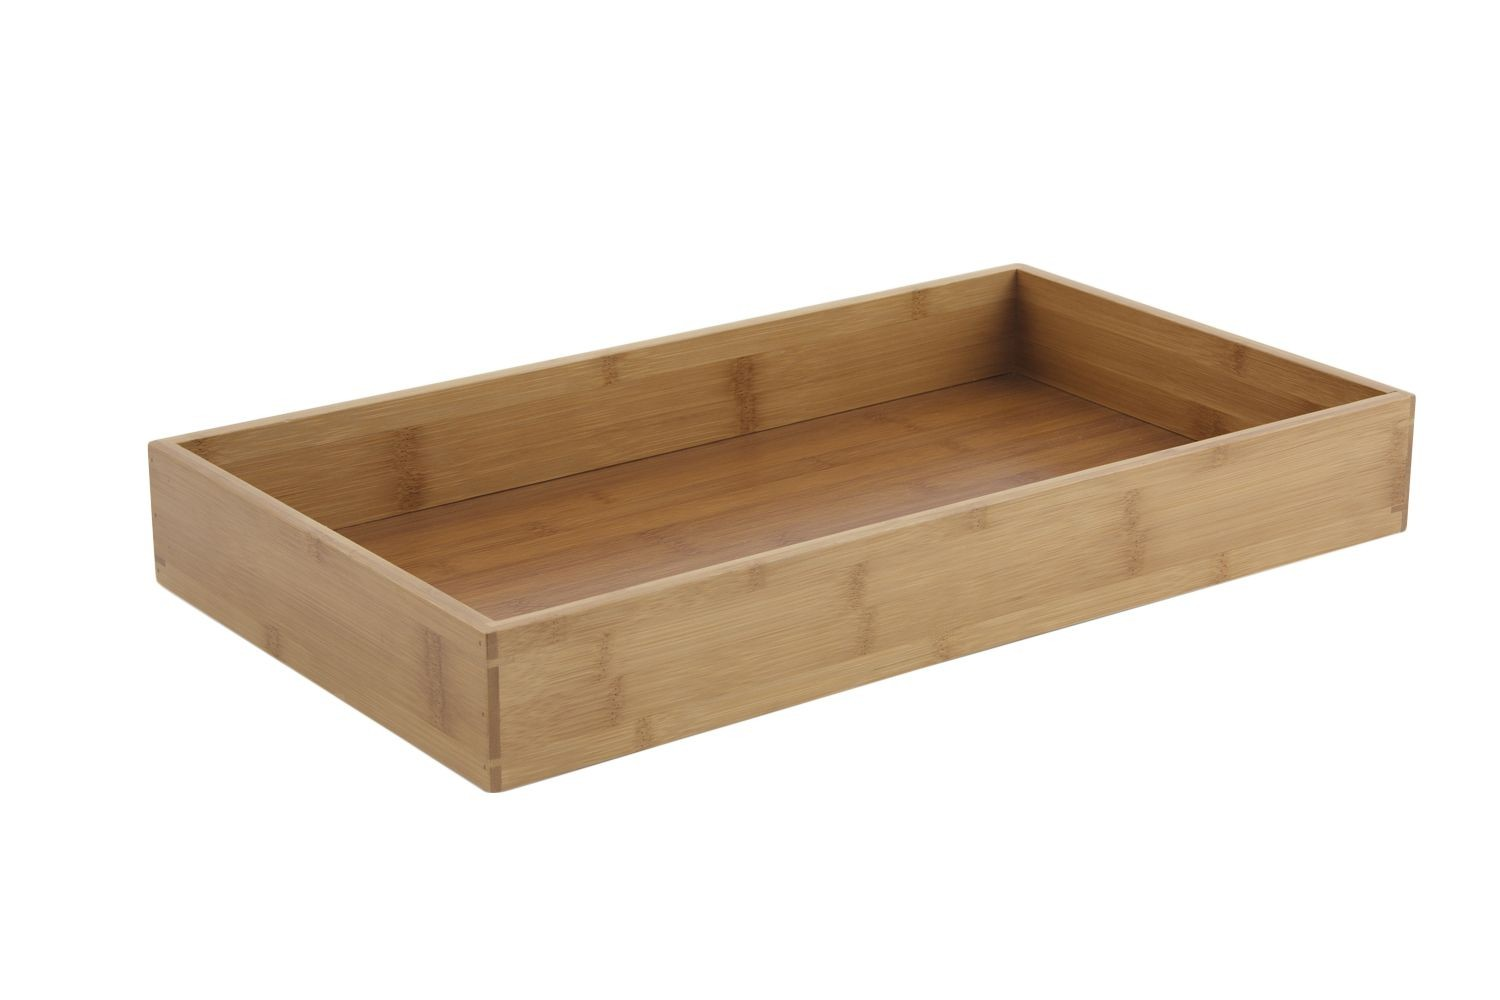 "Bon Chef 9327 Full Size Bamboo Holder for Cold Wave Platter. 20 3/8"" x 11 5/8"" x 2 3/4"", Set of 4"